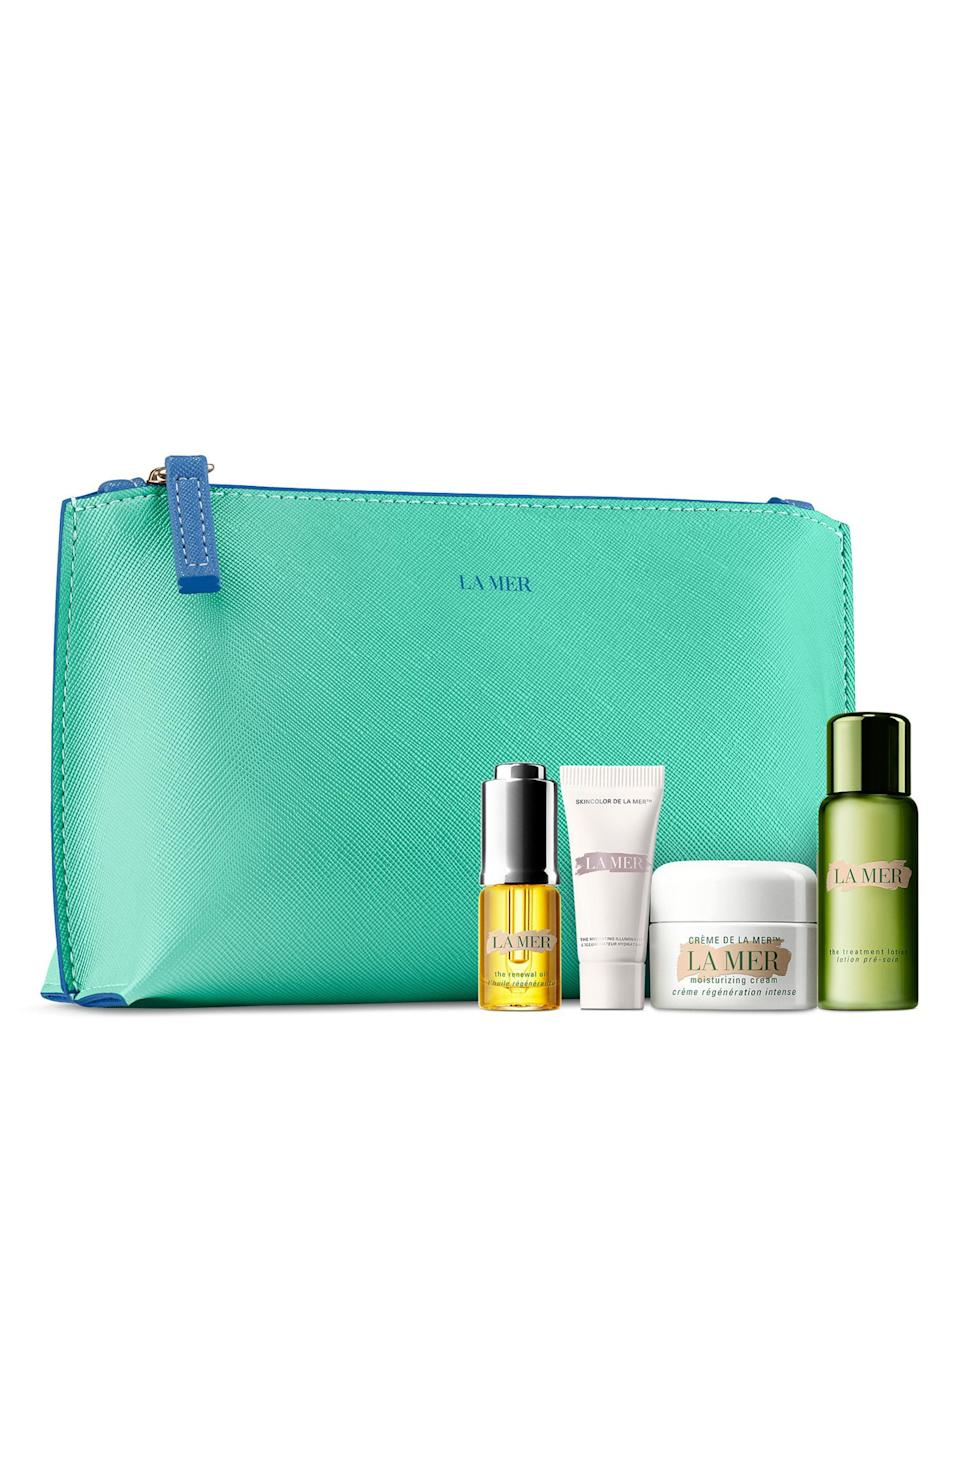 """<p><strong>LA MER</strong></p><p>nordstrom.com</p><p><a href=""""https://go.redirectingat.com?id=74968X1596630&url=https%3A%2F%2Fwww.nordstrom.com%2Fs%2Fla-mer-mini-hydration-collection-creme-set-155-value%2F5588613&sref=https%3A%2F%2Fwww.cosmopolitan.com%2Fstyle-beauty%2Ffashion%2Fg33597174%2Fnordstrom-anniversary-sale-2020%2F"""" rel=""""nofollow noopener"""" target=""""_blank"""" data-ylk=""""slk:Shop Now"""" class=""""link rapid-noclick-resp"""">Shop Now</a></p><p>Here's probably your only chance in life to try La Mer's top products for less than 100 bucks.</p><p><strong><del><br>$155</del><br>$90</strong></p>"""